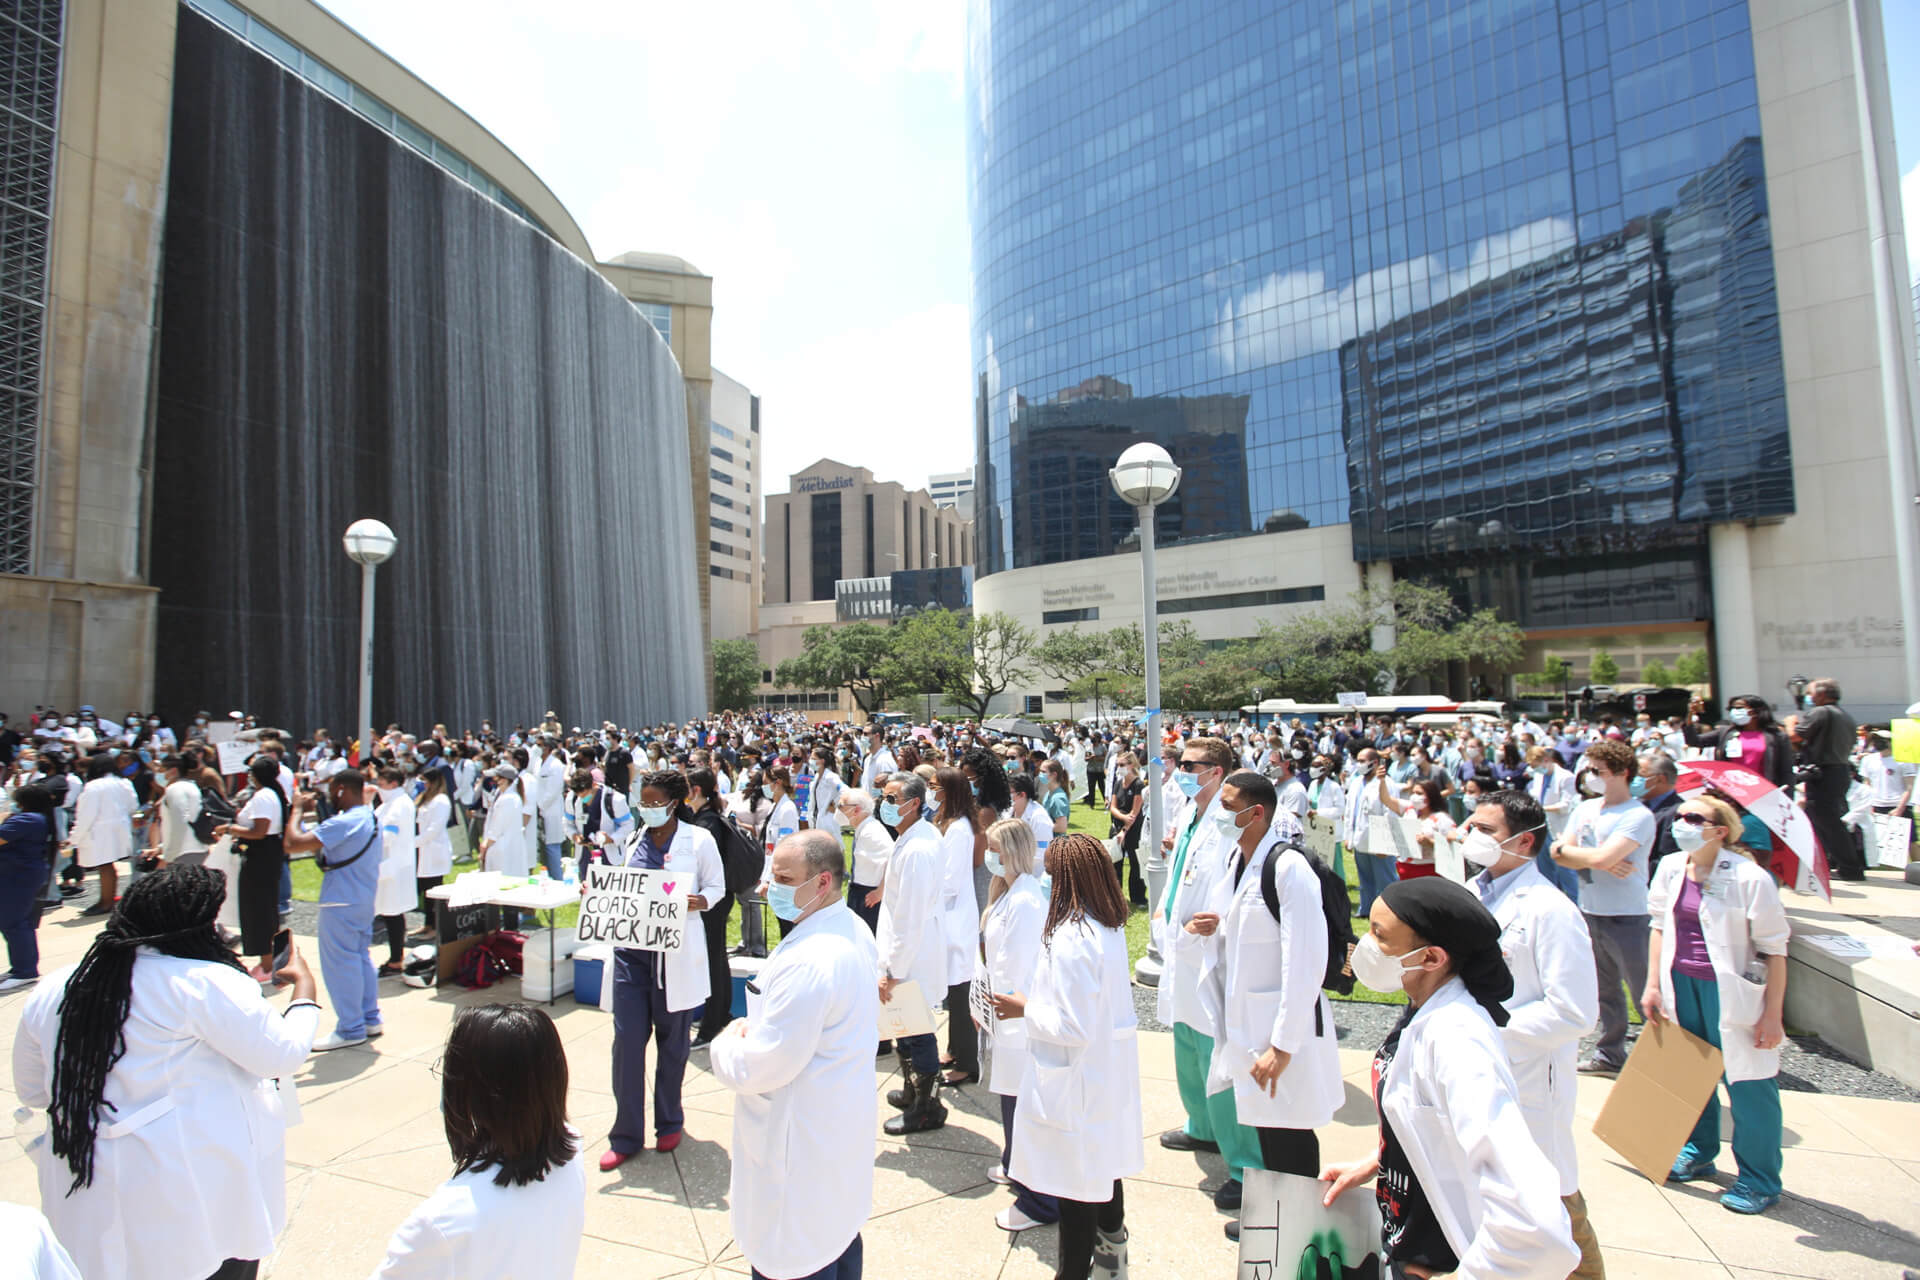 Texas Medical Center health professionals participate in a walking vigil for black lives on Tuesday, June 9, 2020.